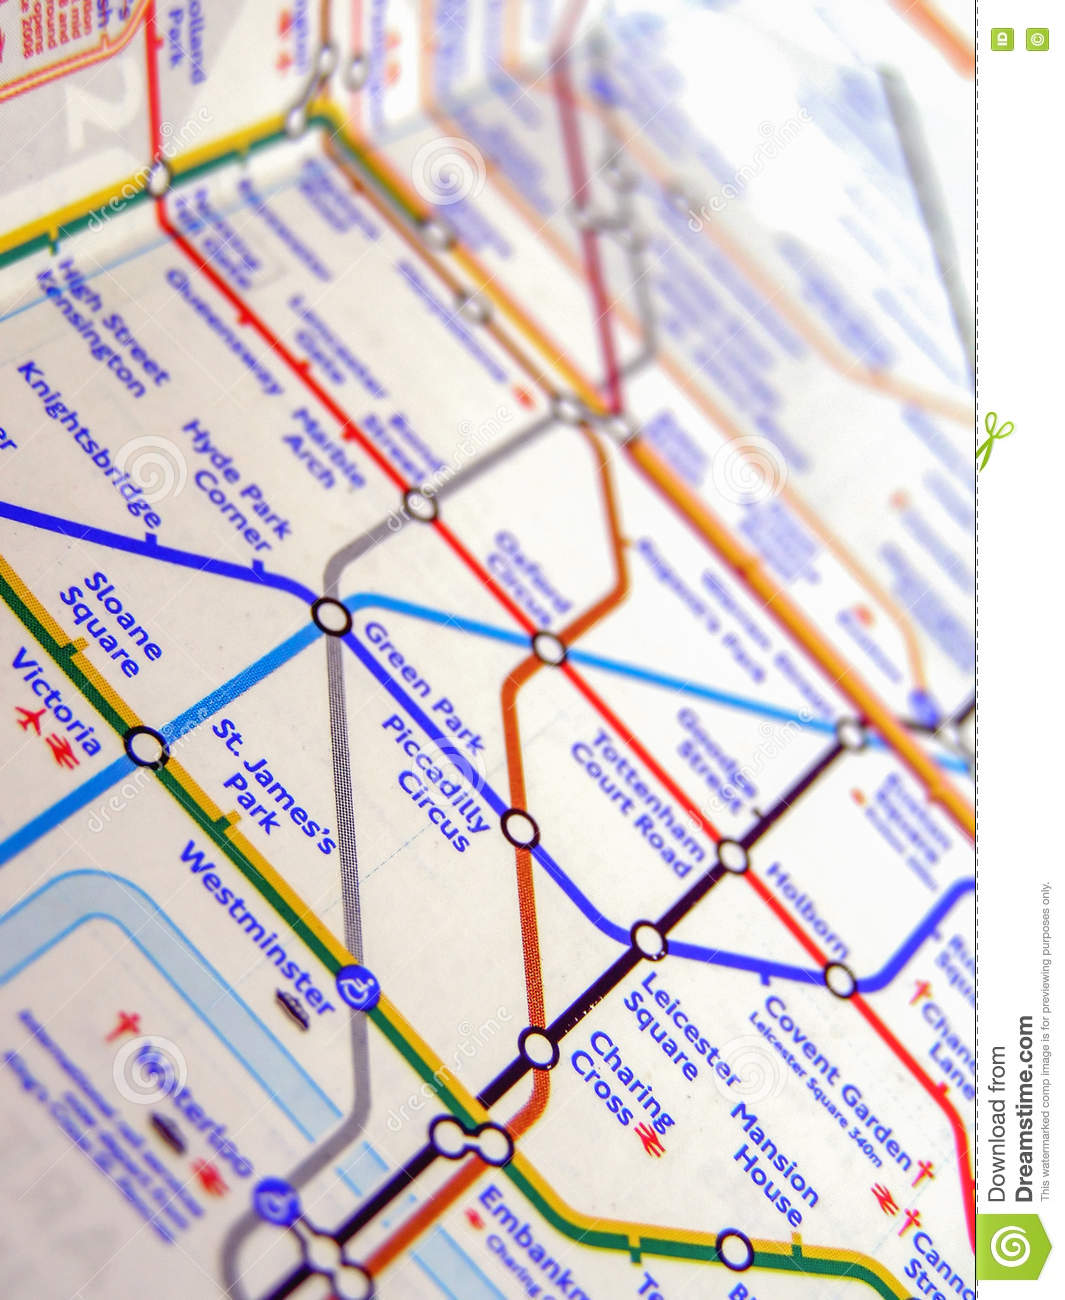 Map Of London England And Surrounding Area.Tube Map Of London Underground Editorial Photo Image Of United